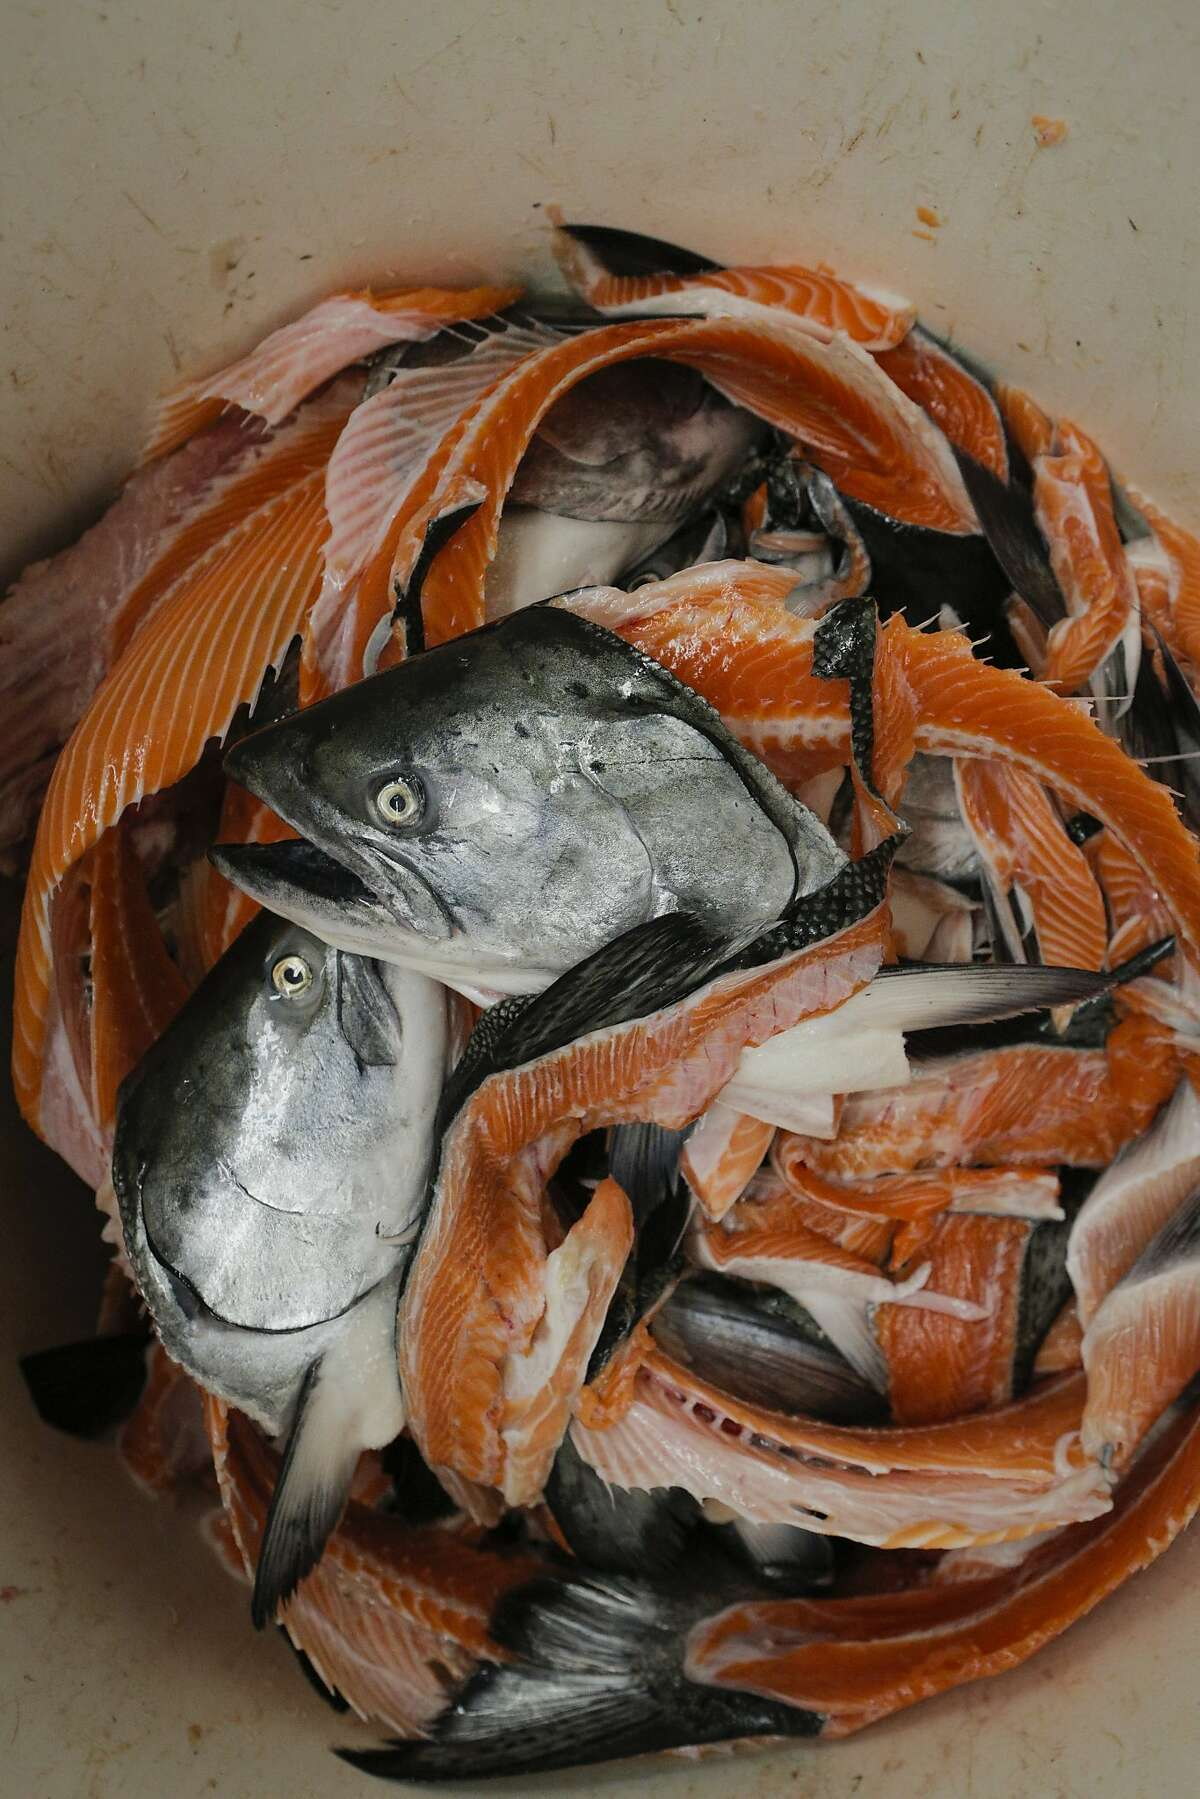 """Wild king salmon carcasses are seen at the North Coast Fisheries processing plant in Santa Rosa, California, on Friday, July 17, 2015. Siren Fish Company, owned by Anna Larsen, has its fish processed at North Coast Fisheries. Siren Fish Company specializes in providing locally caught, sustainable fish to its """"CSF"""" members on a weekly basis."""